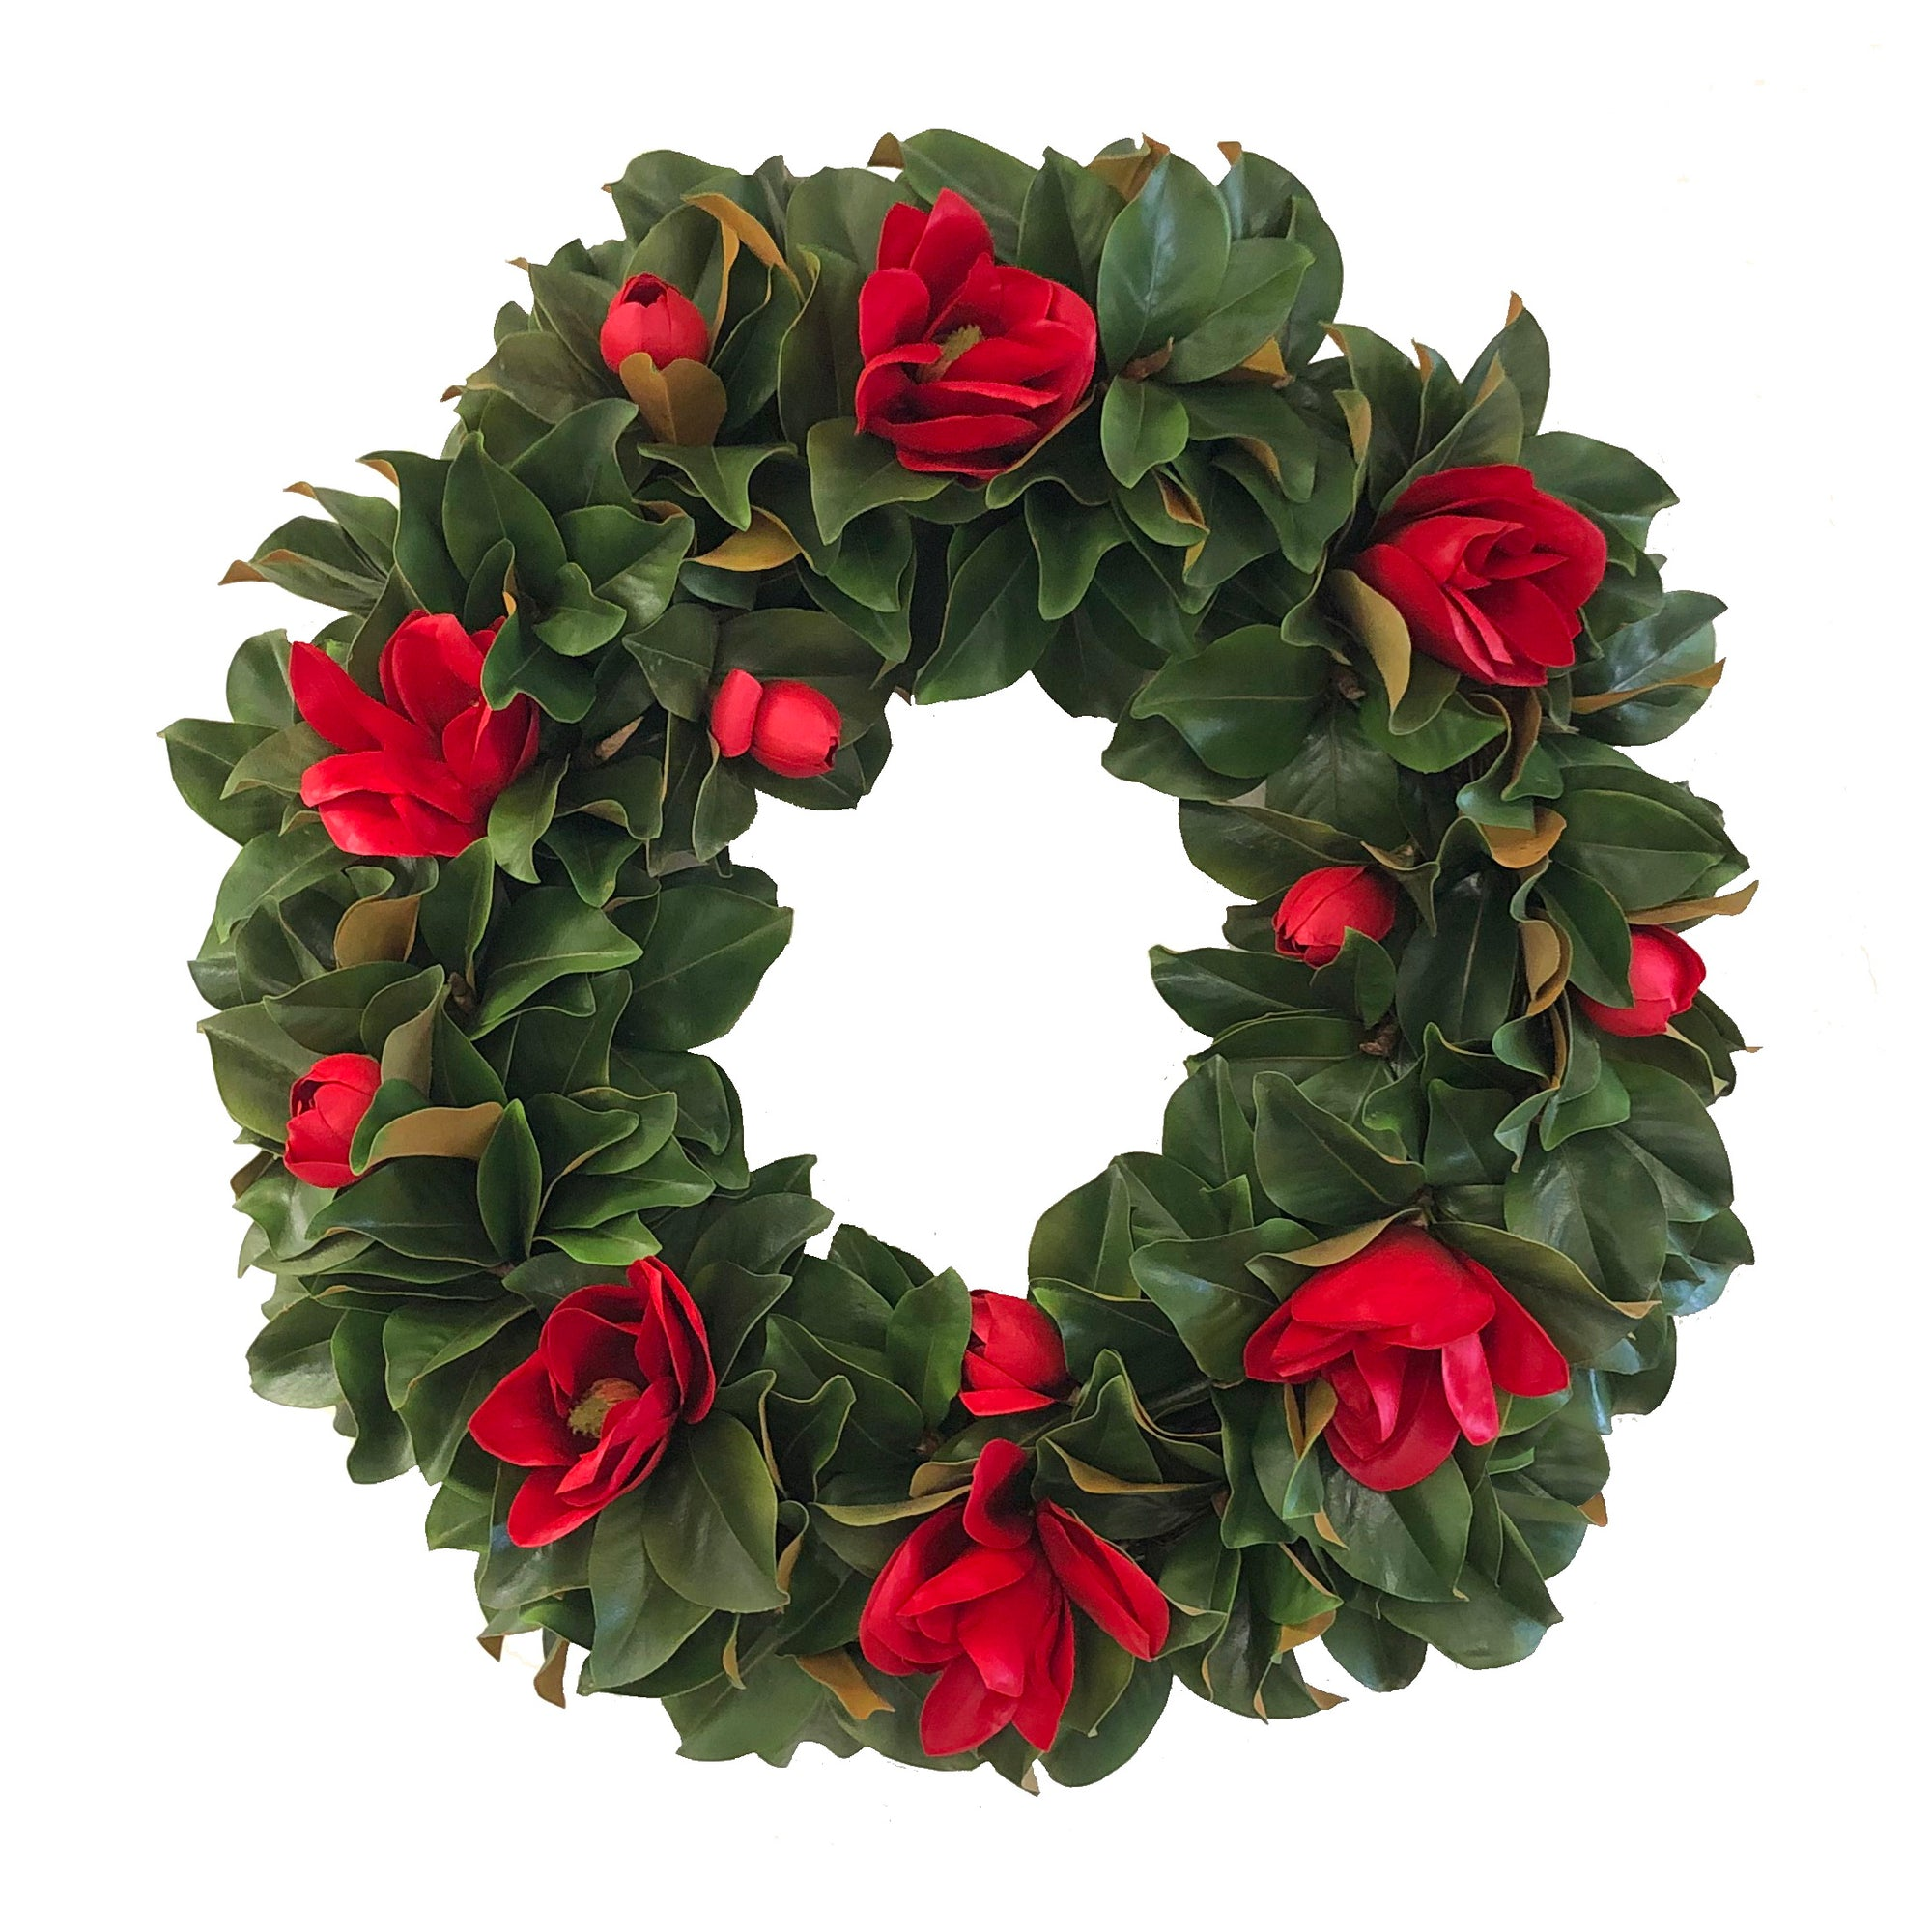 MAGNOLIA MIX WREATH 36''